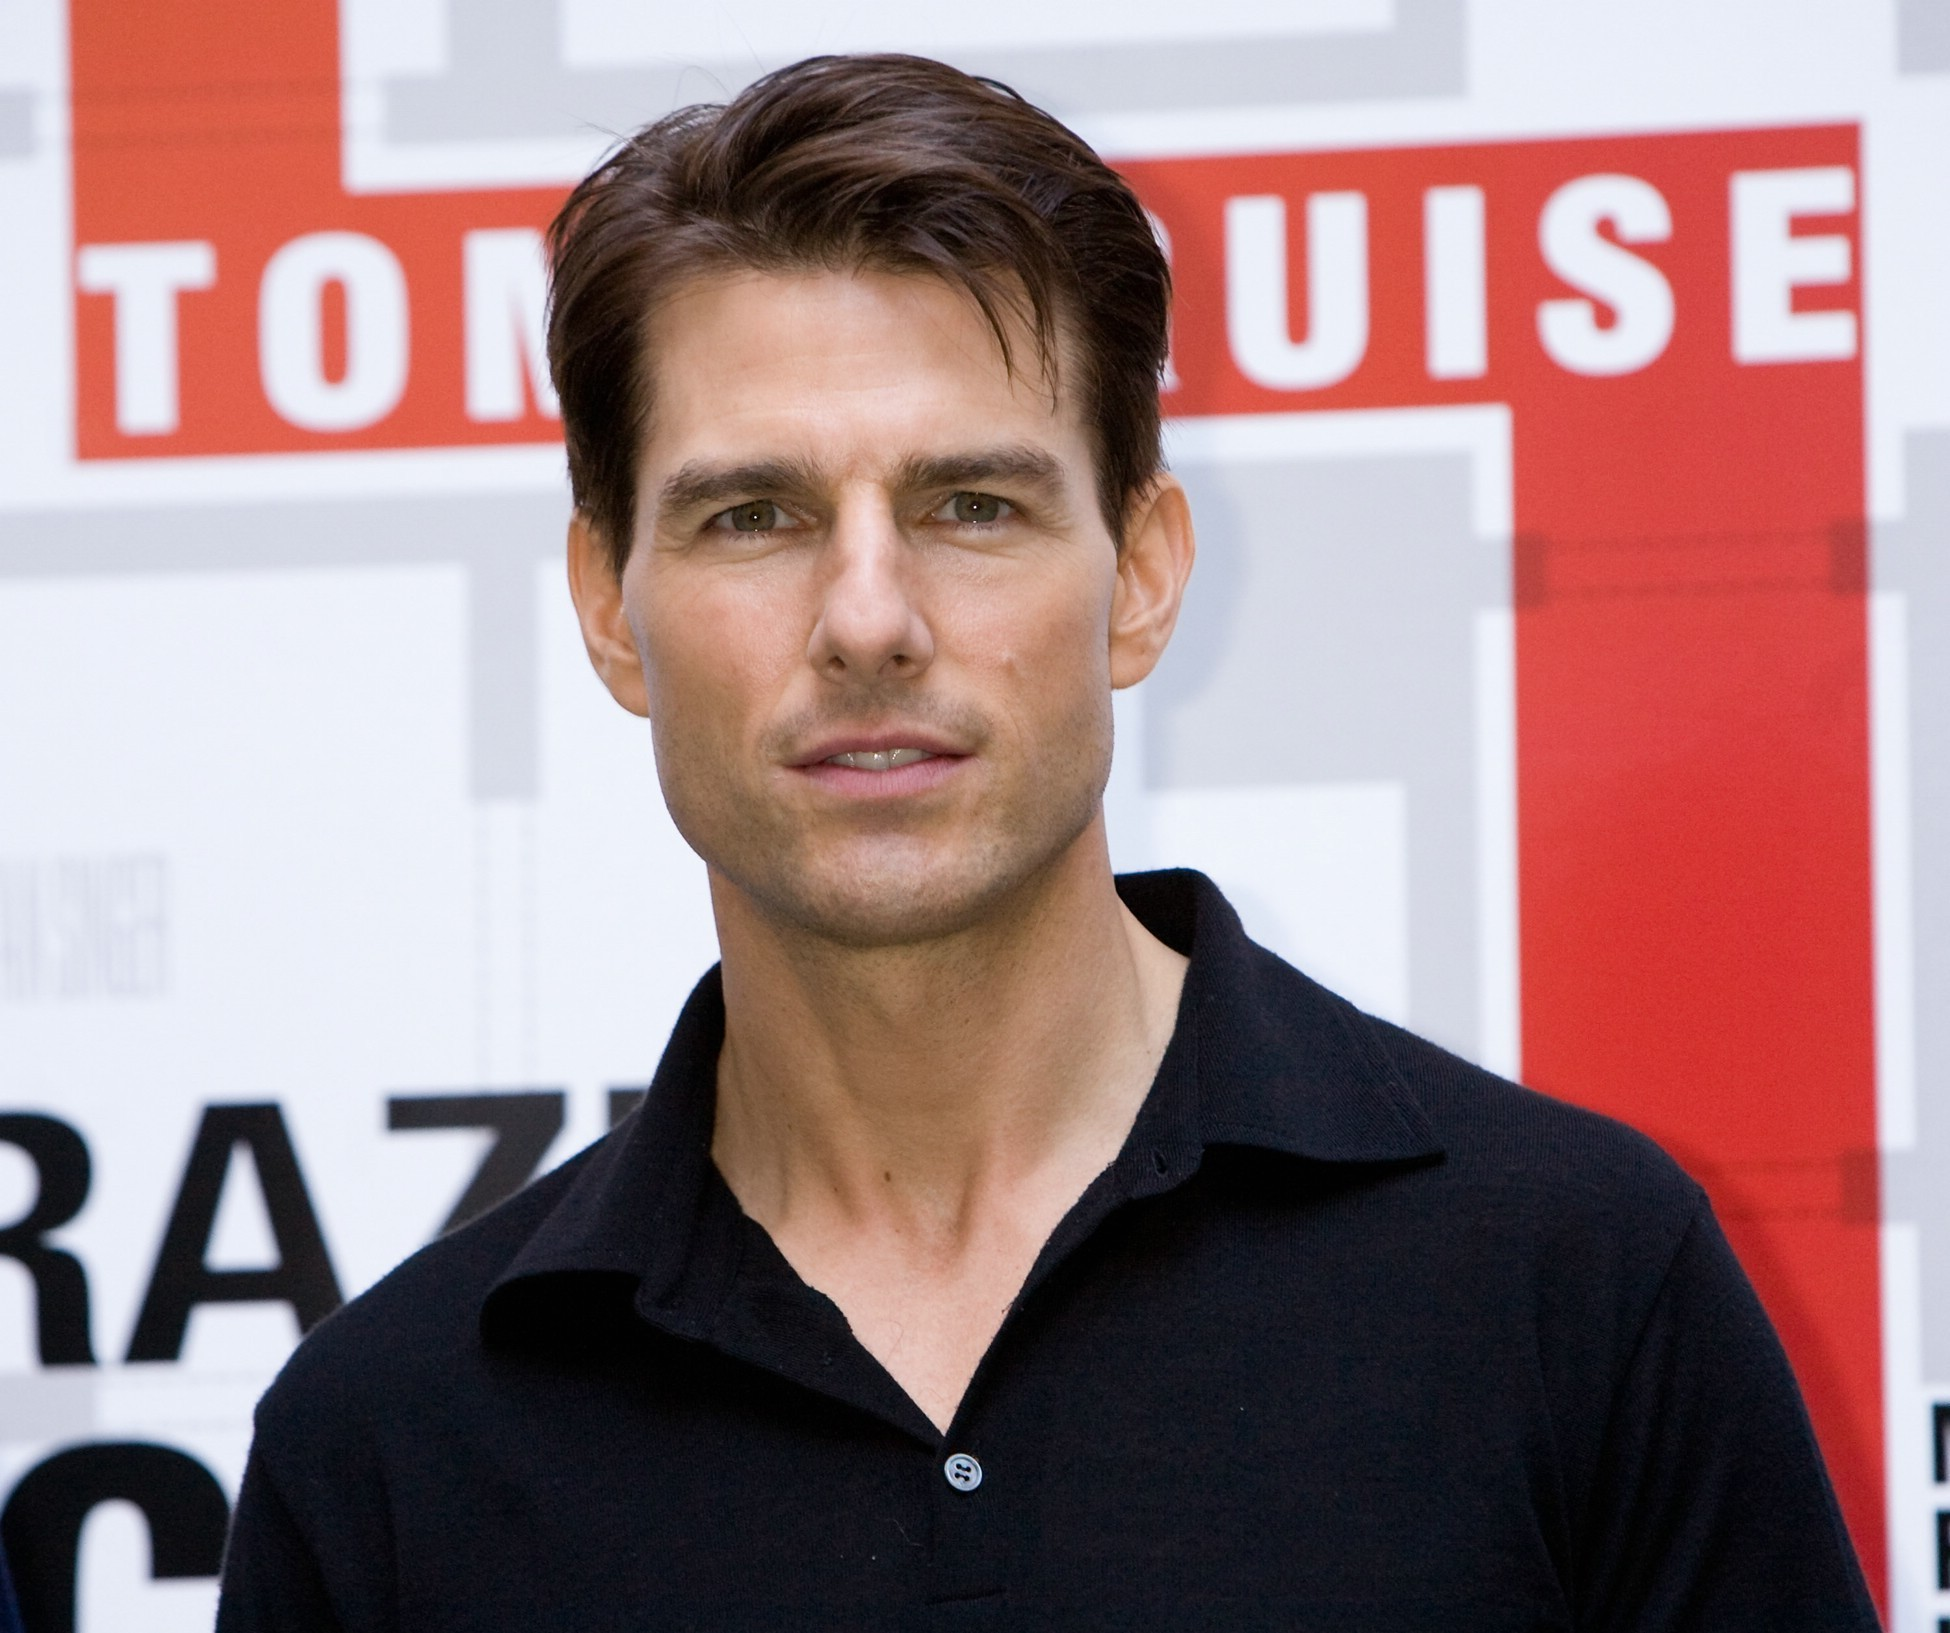 http://images2.fanpop.com/images/photos/4100000/Tom-Cruise-tom-cruise-4124879-1950-1633.jpg